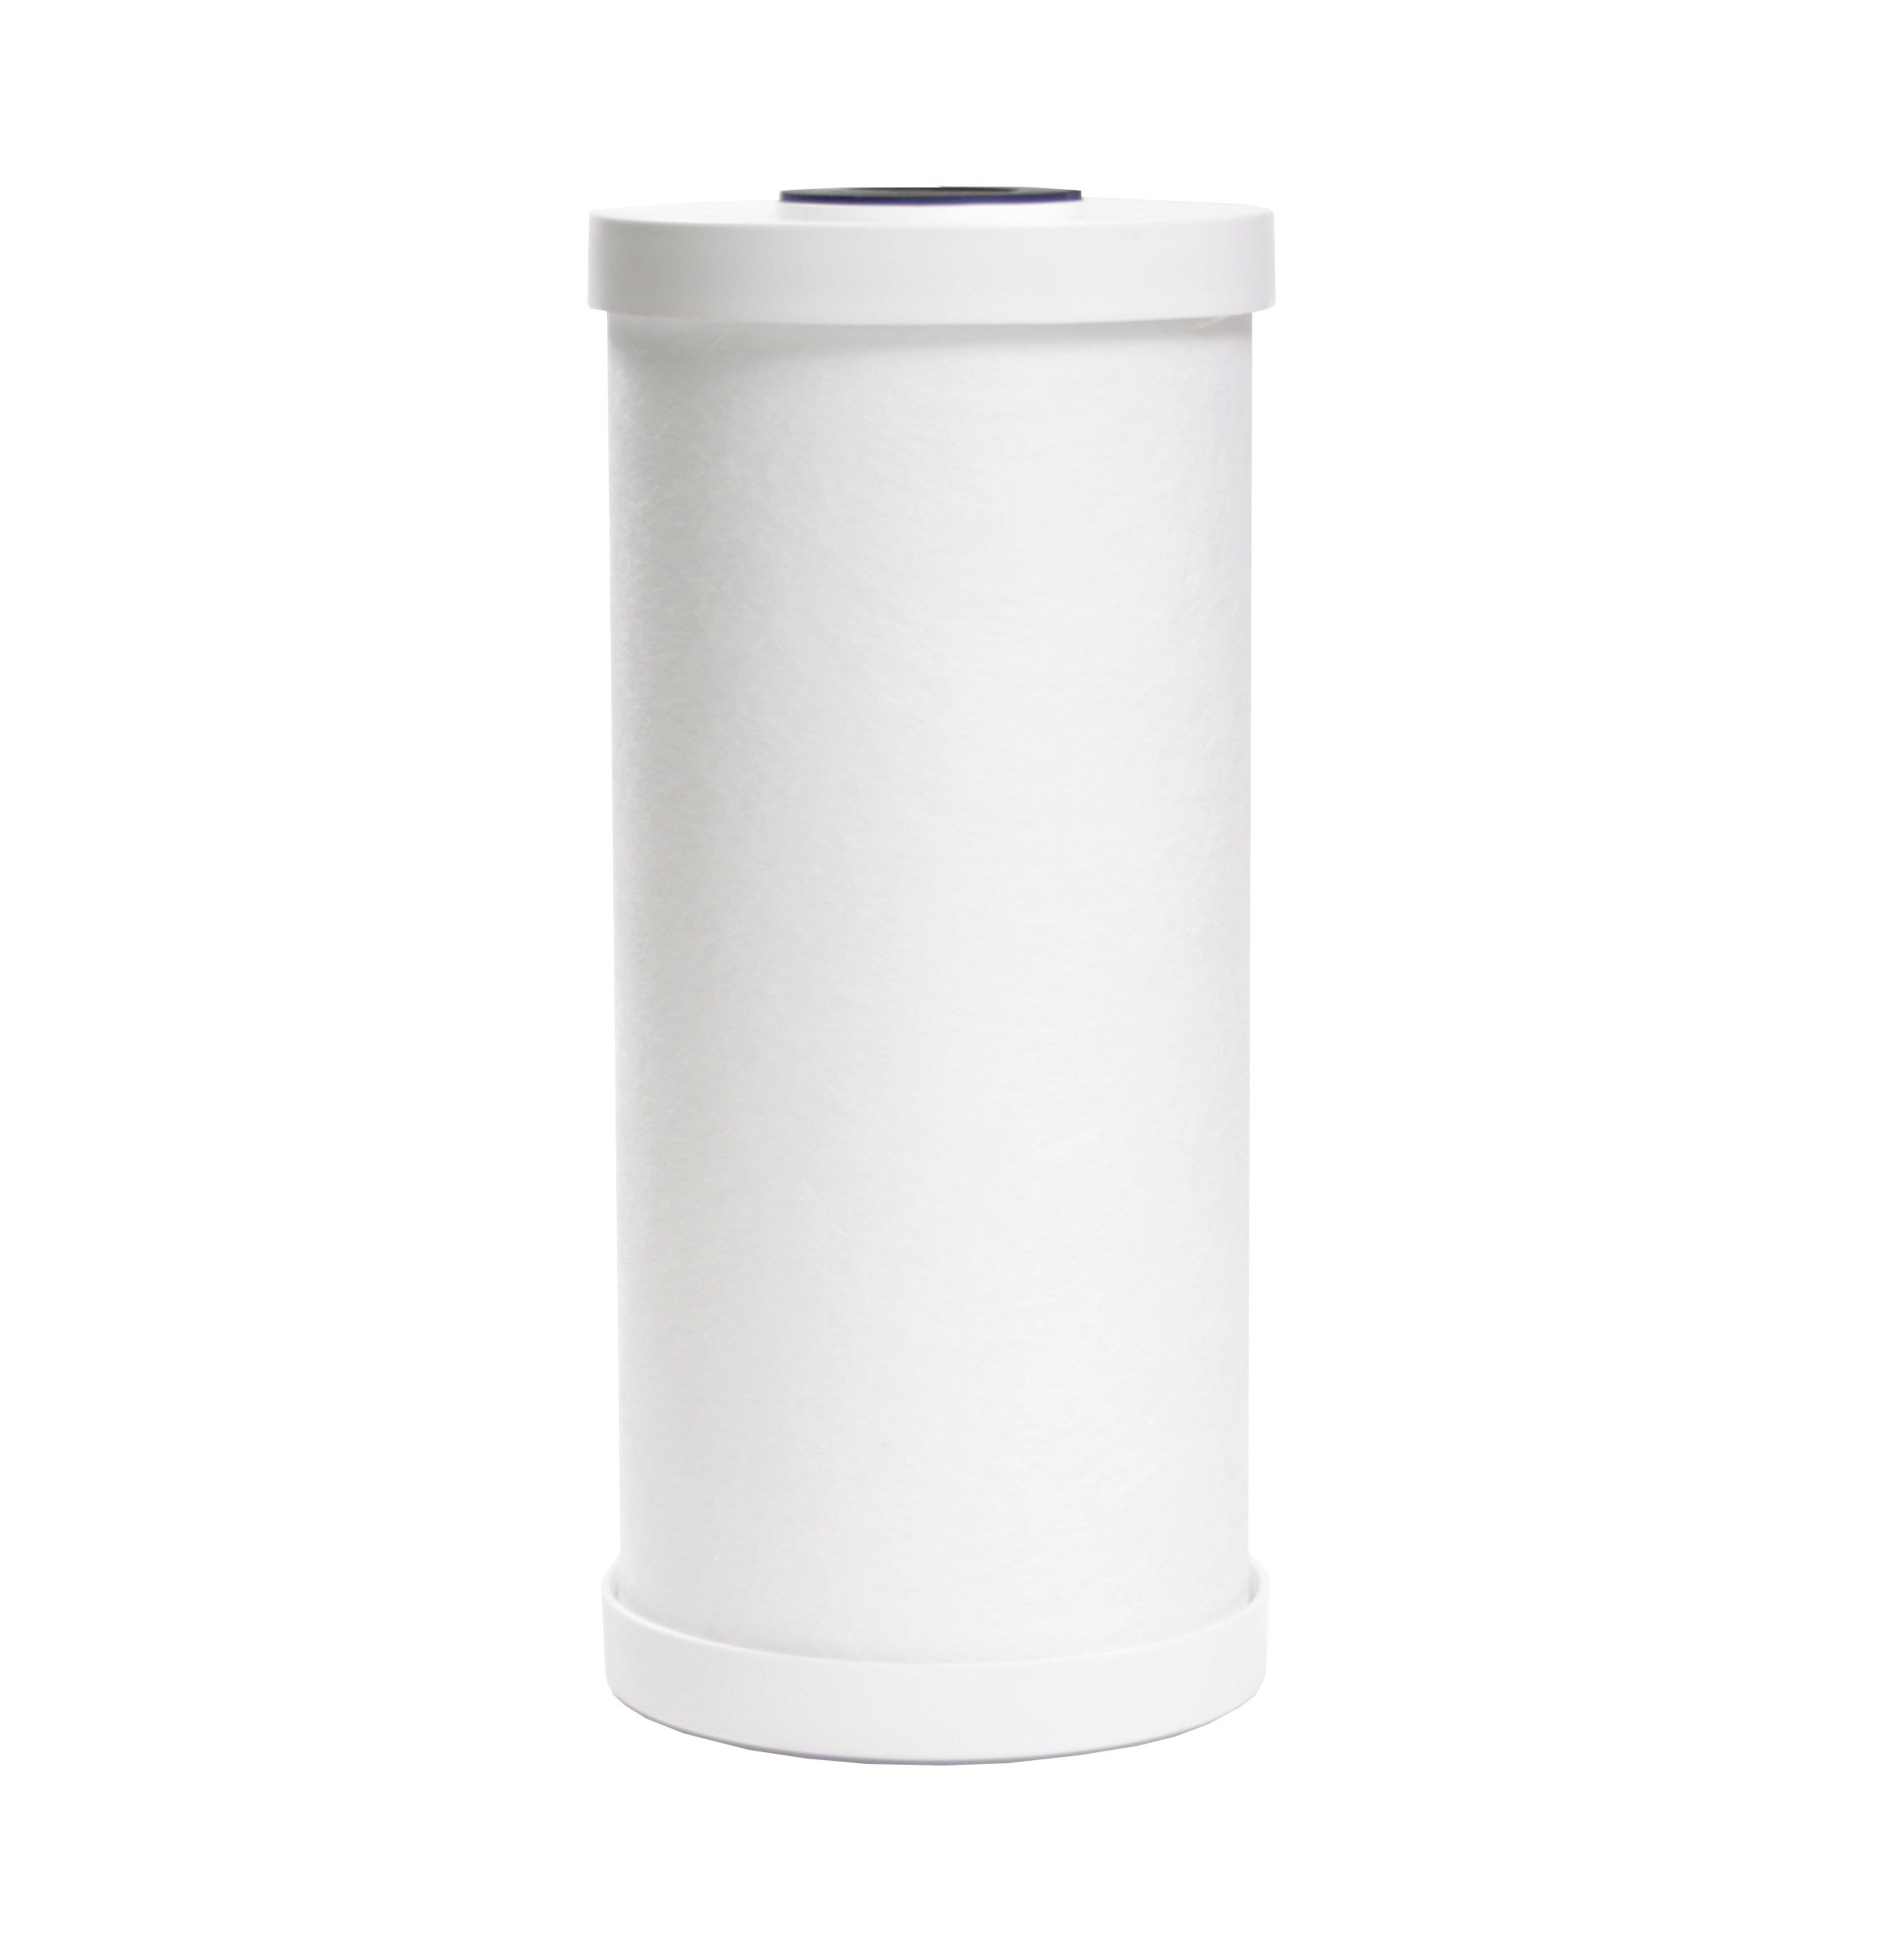 GE FXHTC Whole Home System Replacement Filter by GE (Image #2)